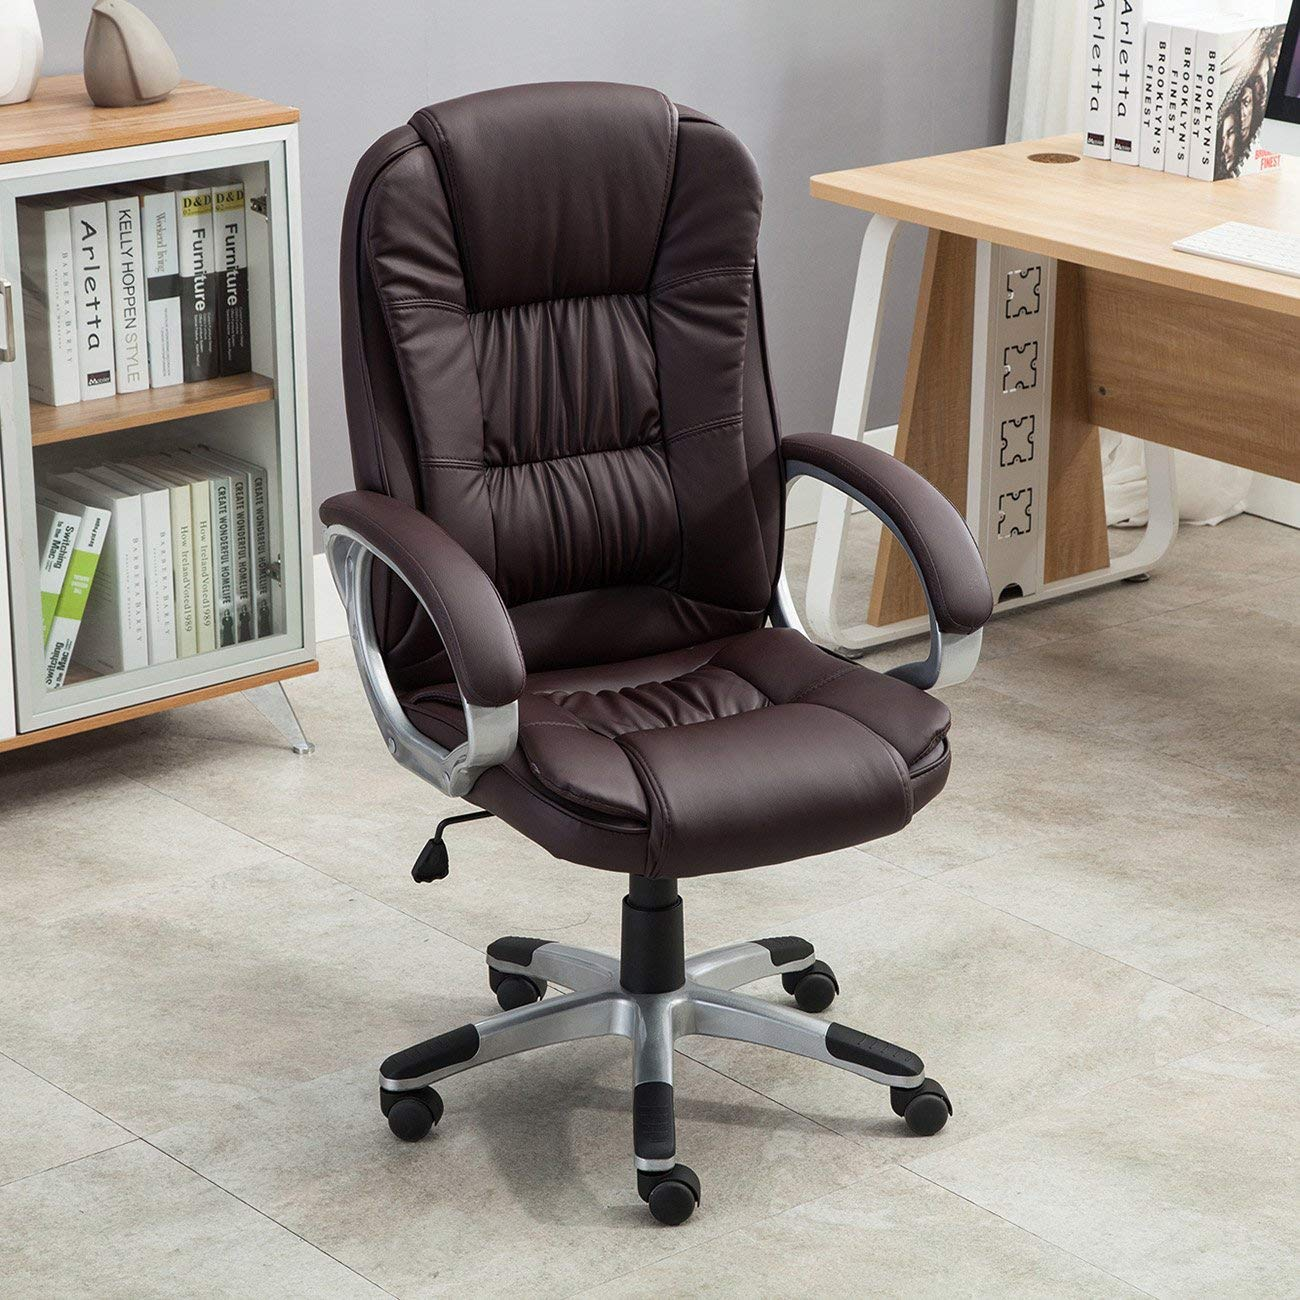 High Back Executive Adjustable Leather Ergonomic Desk Office Chair, Ergonomic Design Soft PU Leather Upholstery is Highly Comfortable with Ample Padding, Ideal for Personalized Comfort